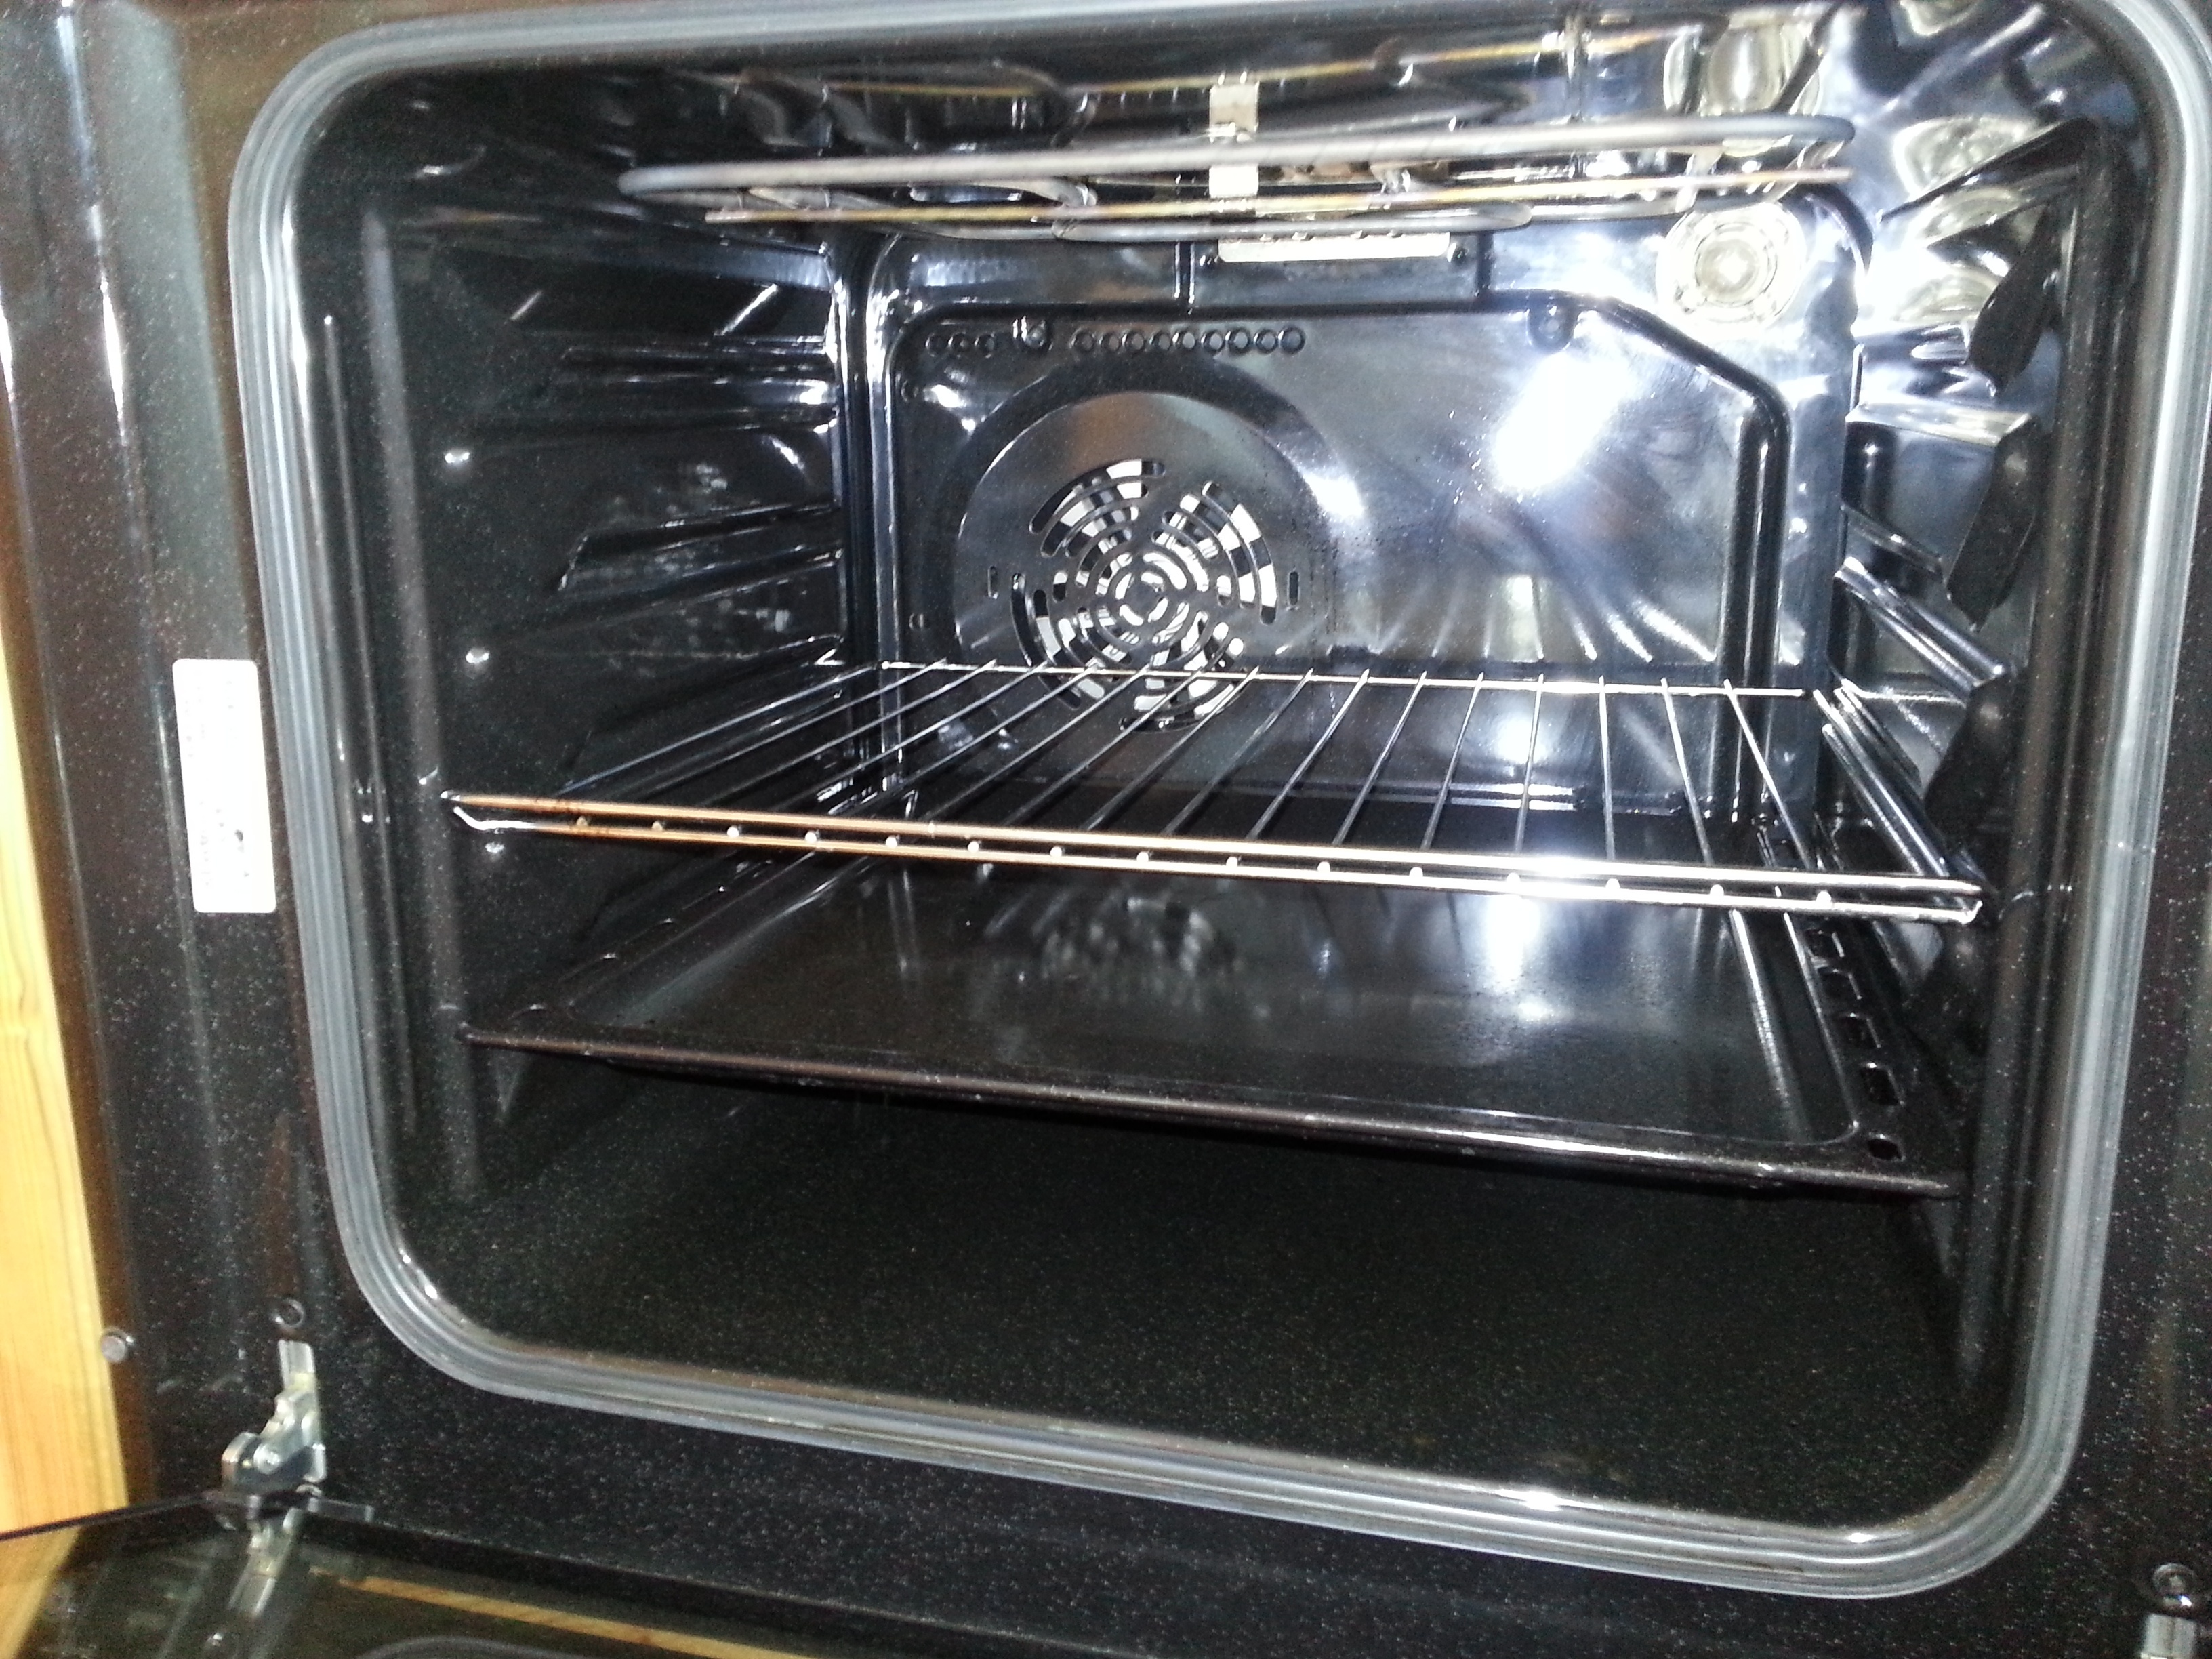 Oven Cleaner Doncaster